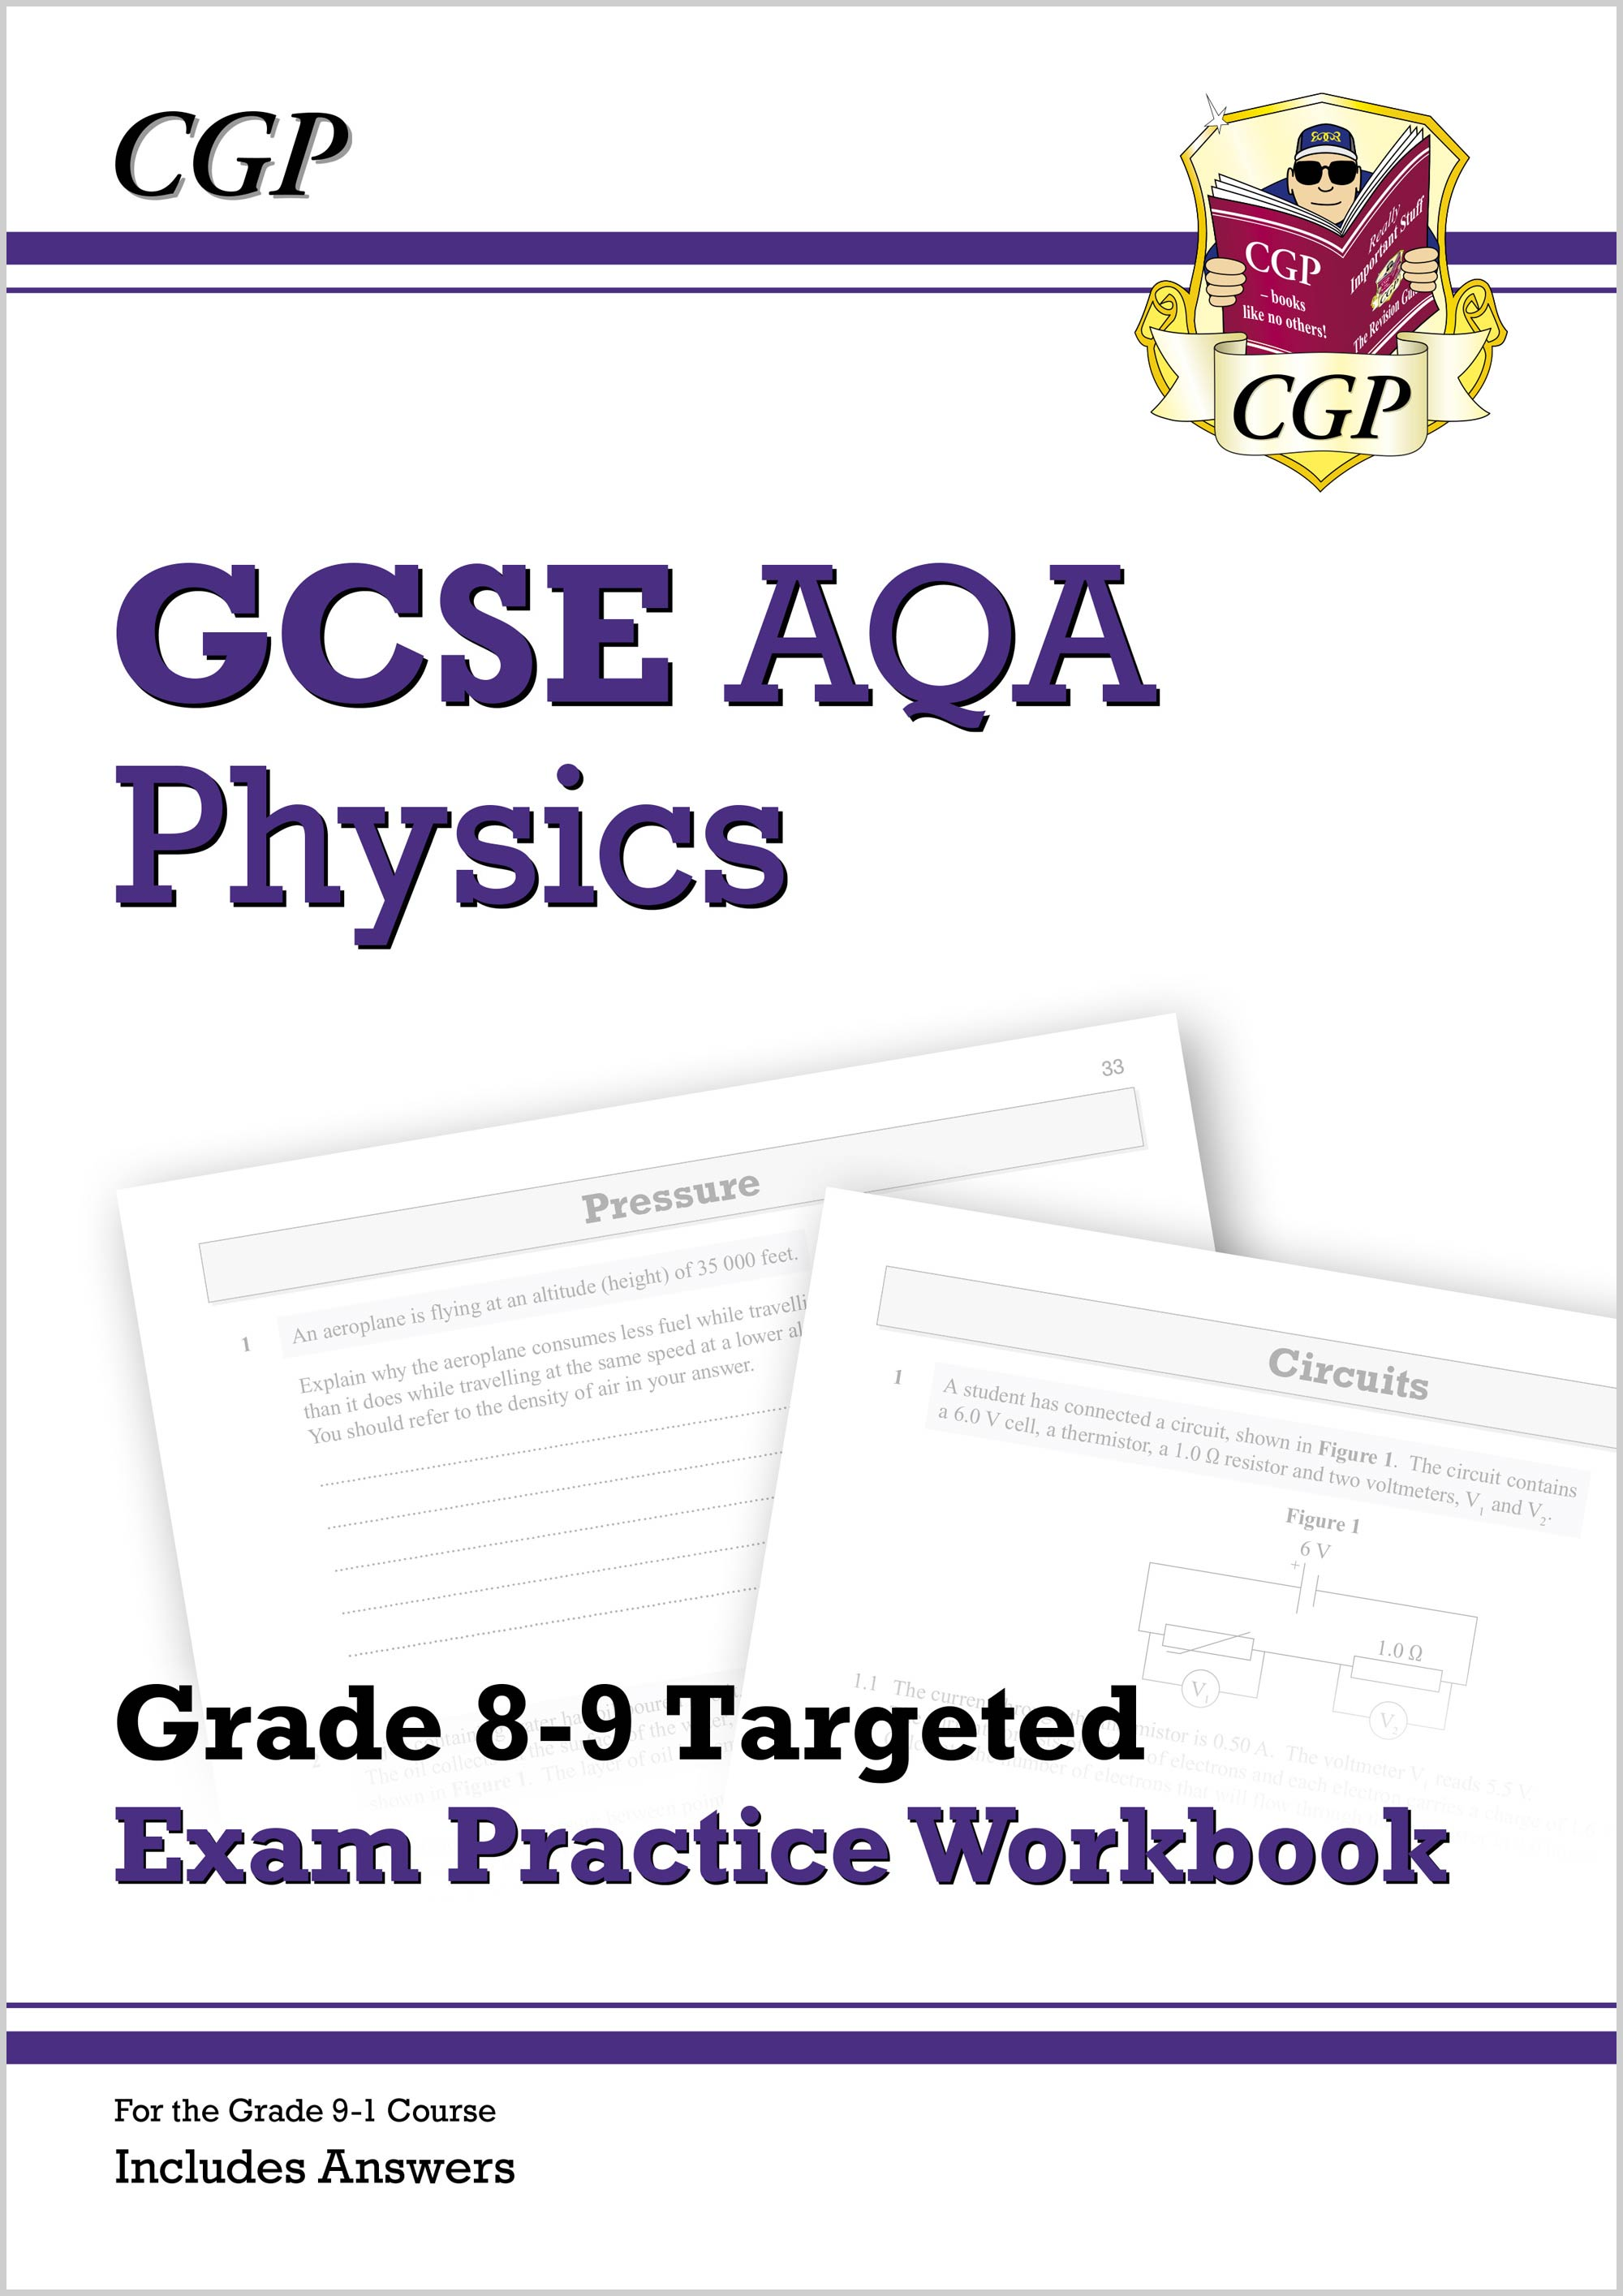 PA9Q41DK - New GCSE Physics AQA Grade 8-9 Targeted Exam Practice Workbook (includes Answers)